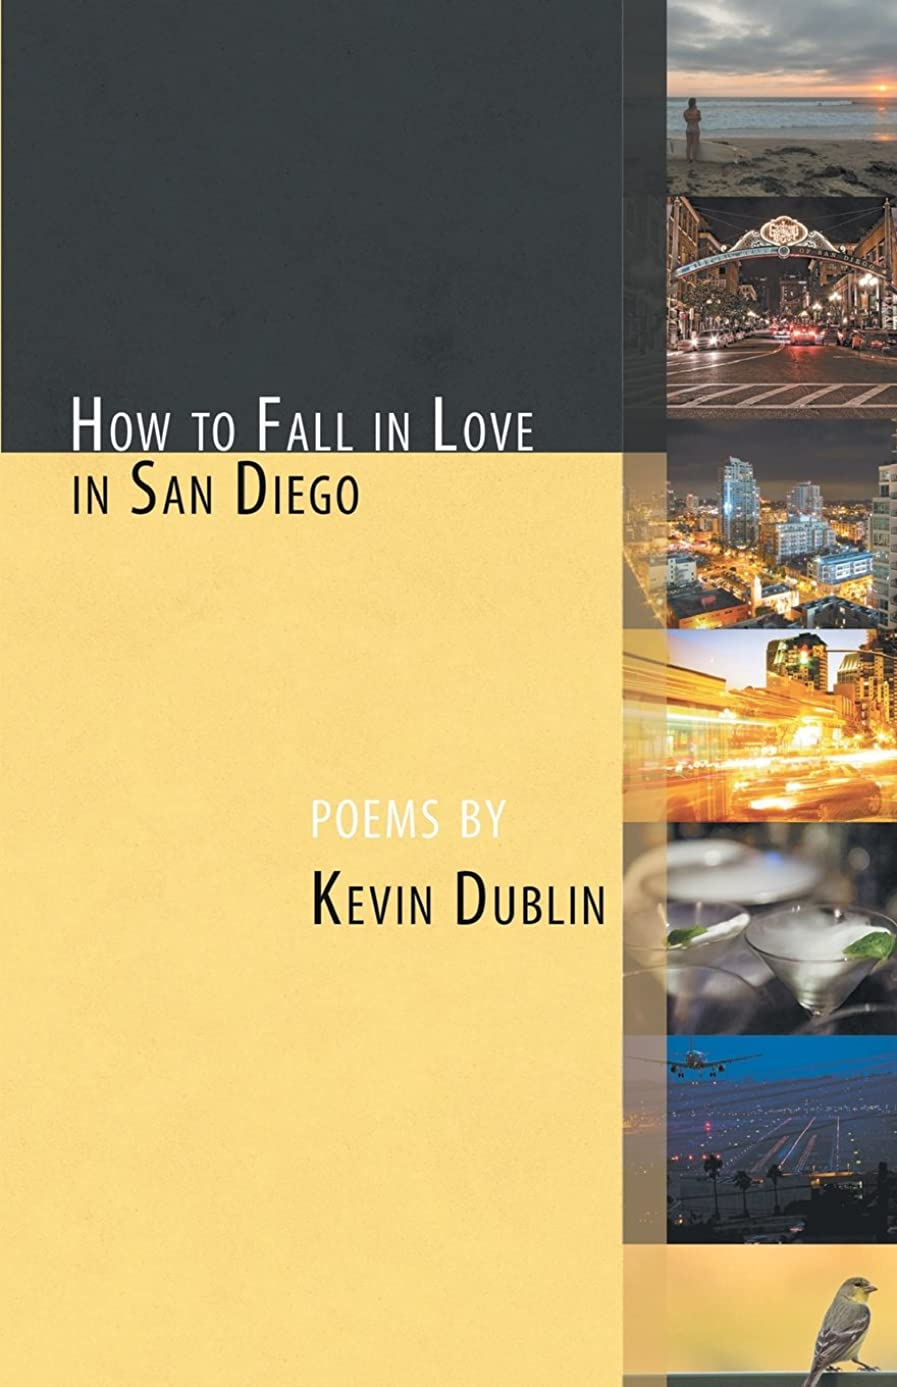 How to Fall in Love in San Diego